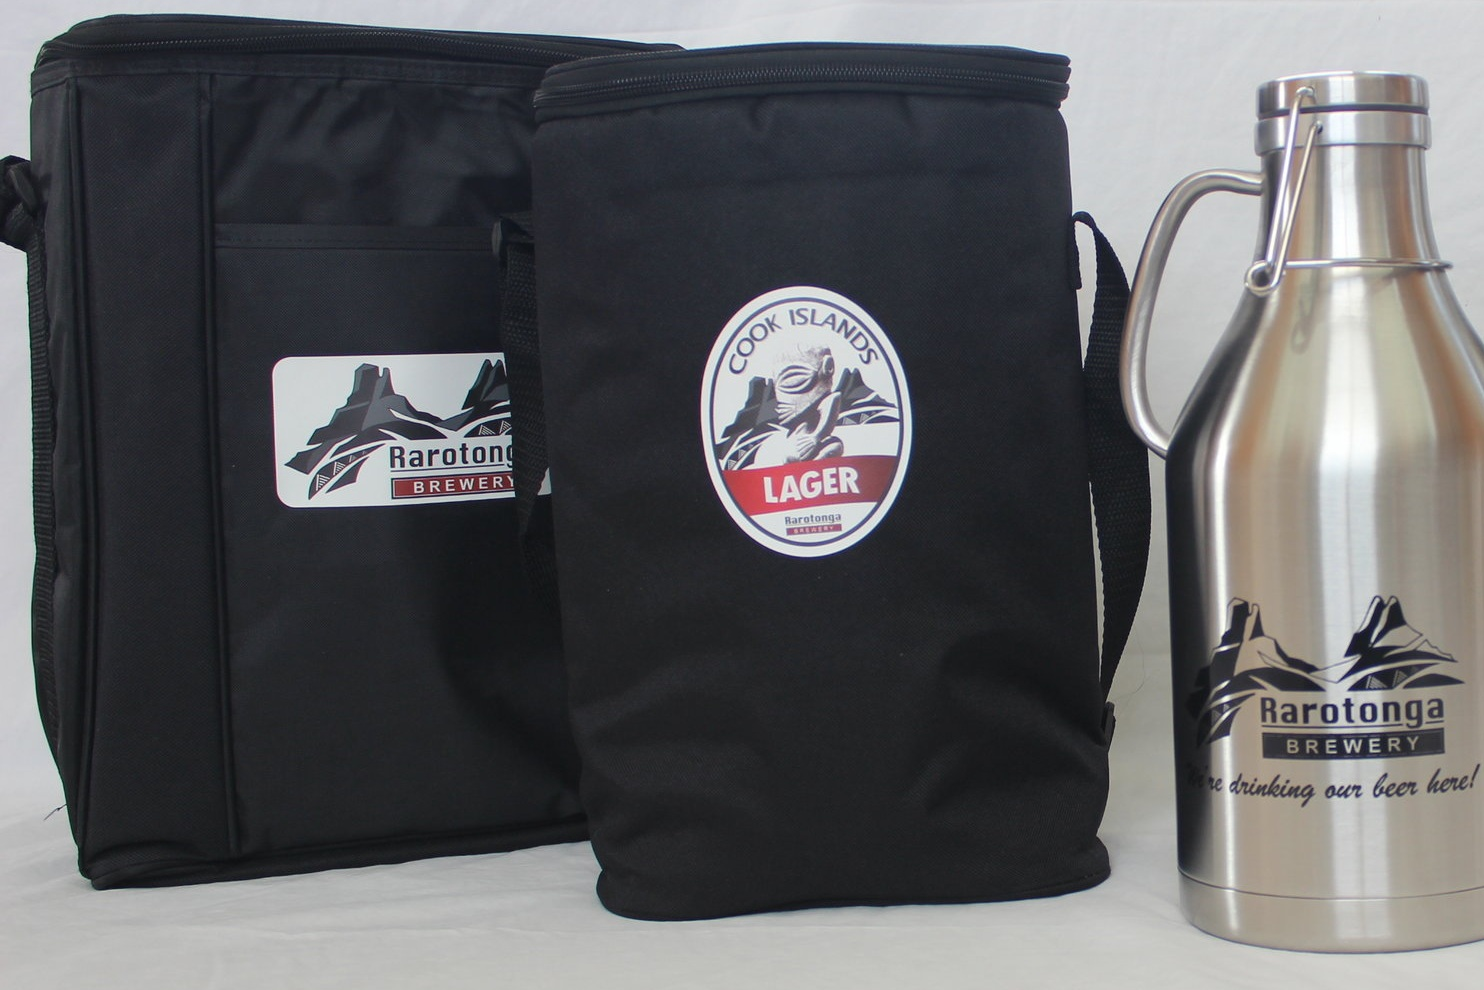 Cooler Bags   Heading out for a day at the beach? These insulated cooler bags will keep your beers cold on the hottest of days here in Rarotonga